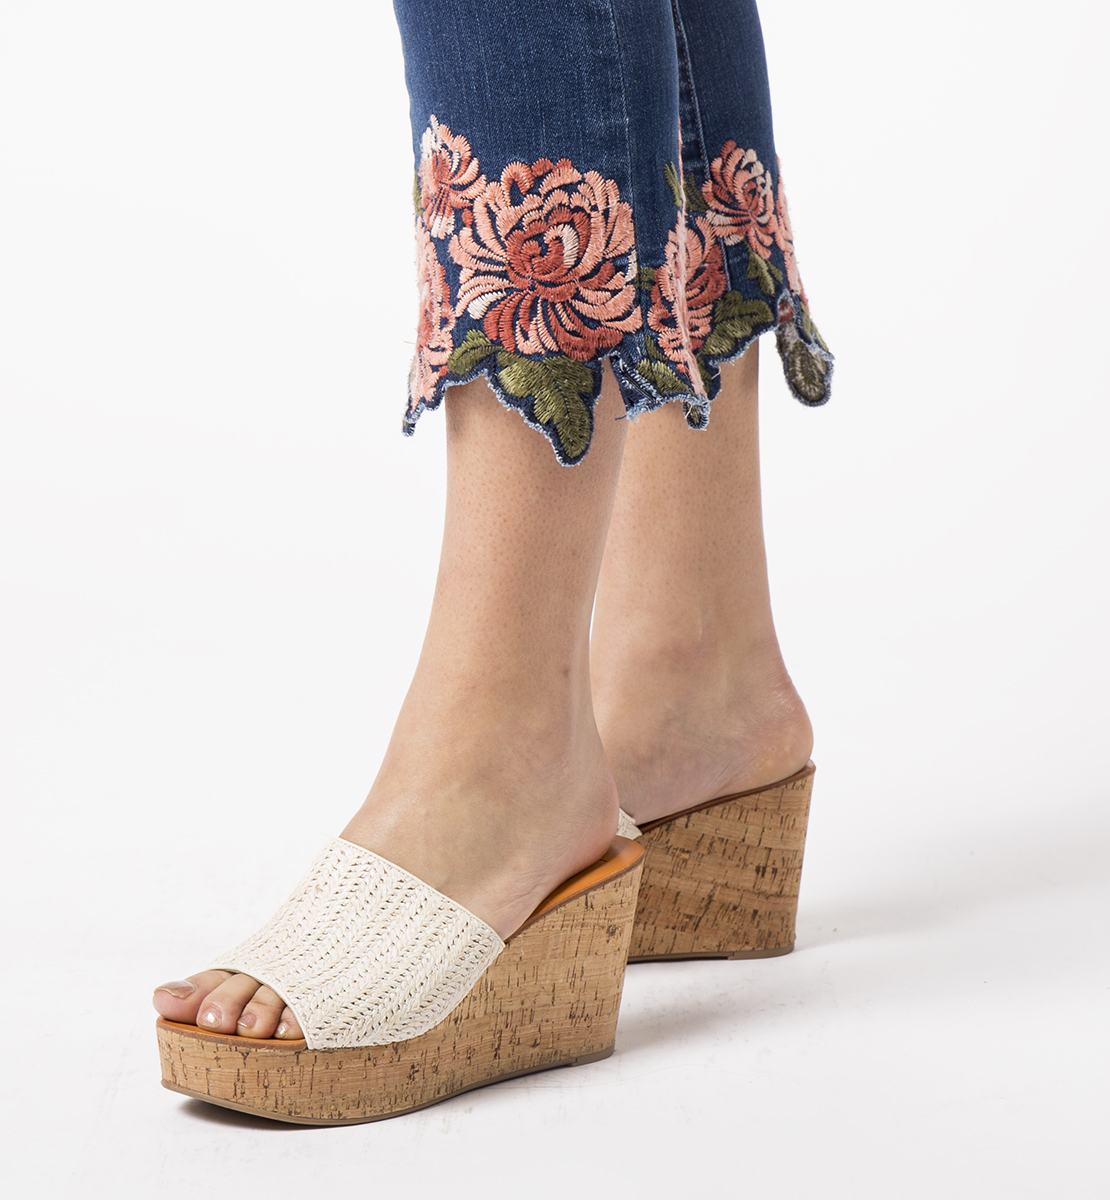 Ellis Cropped Boot With Embroidery, , hi-res